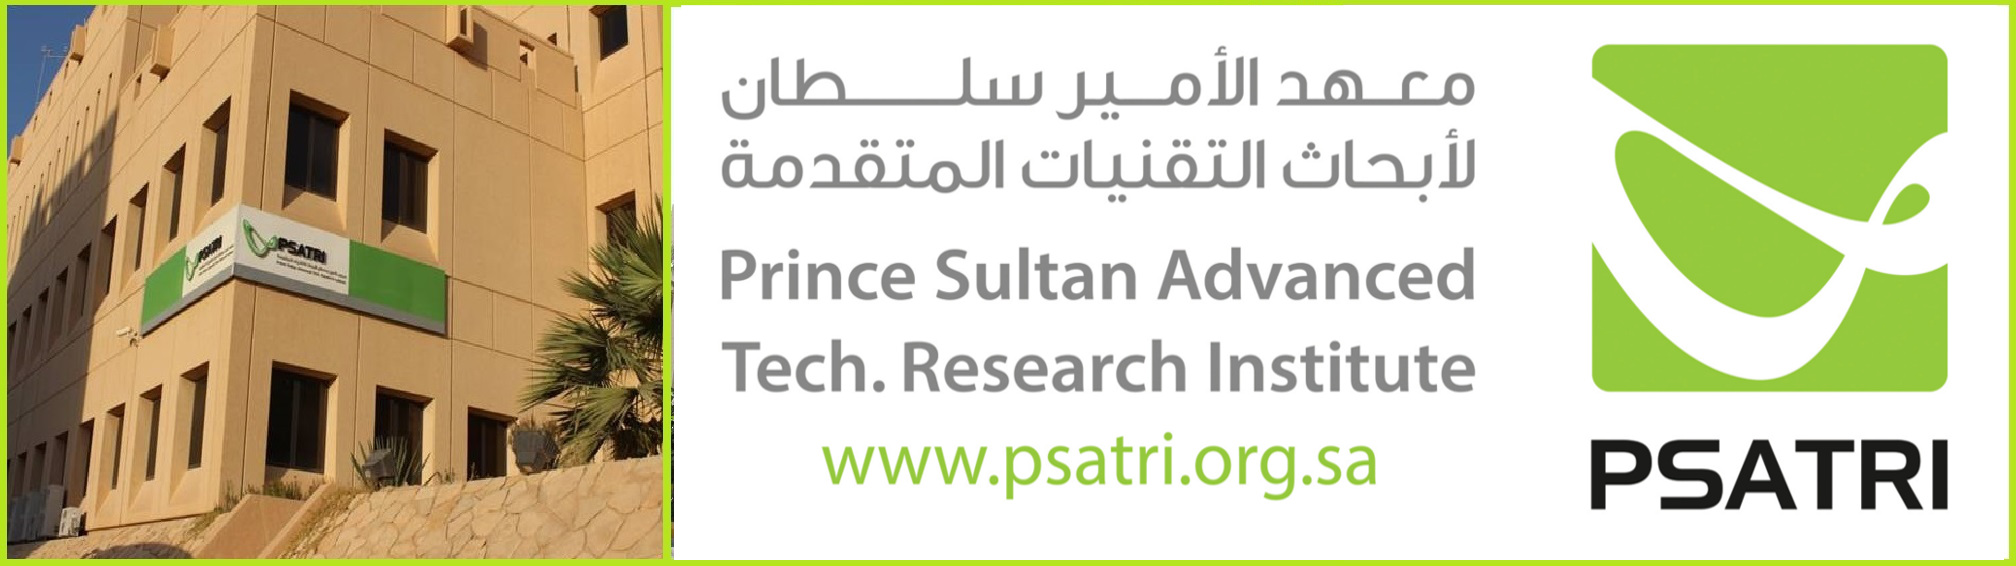 PSATRI - Excellence in Applied Research